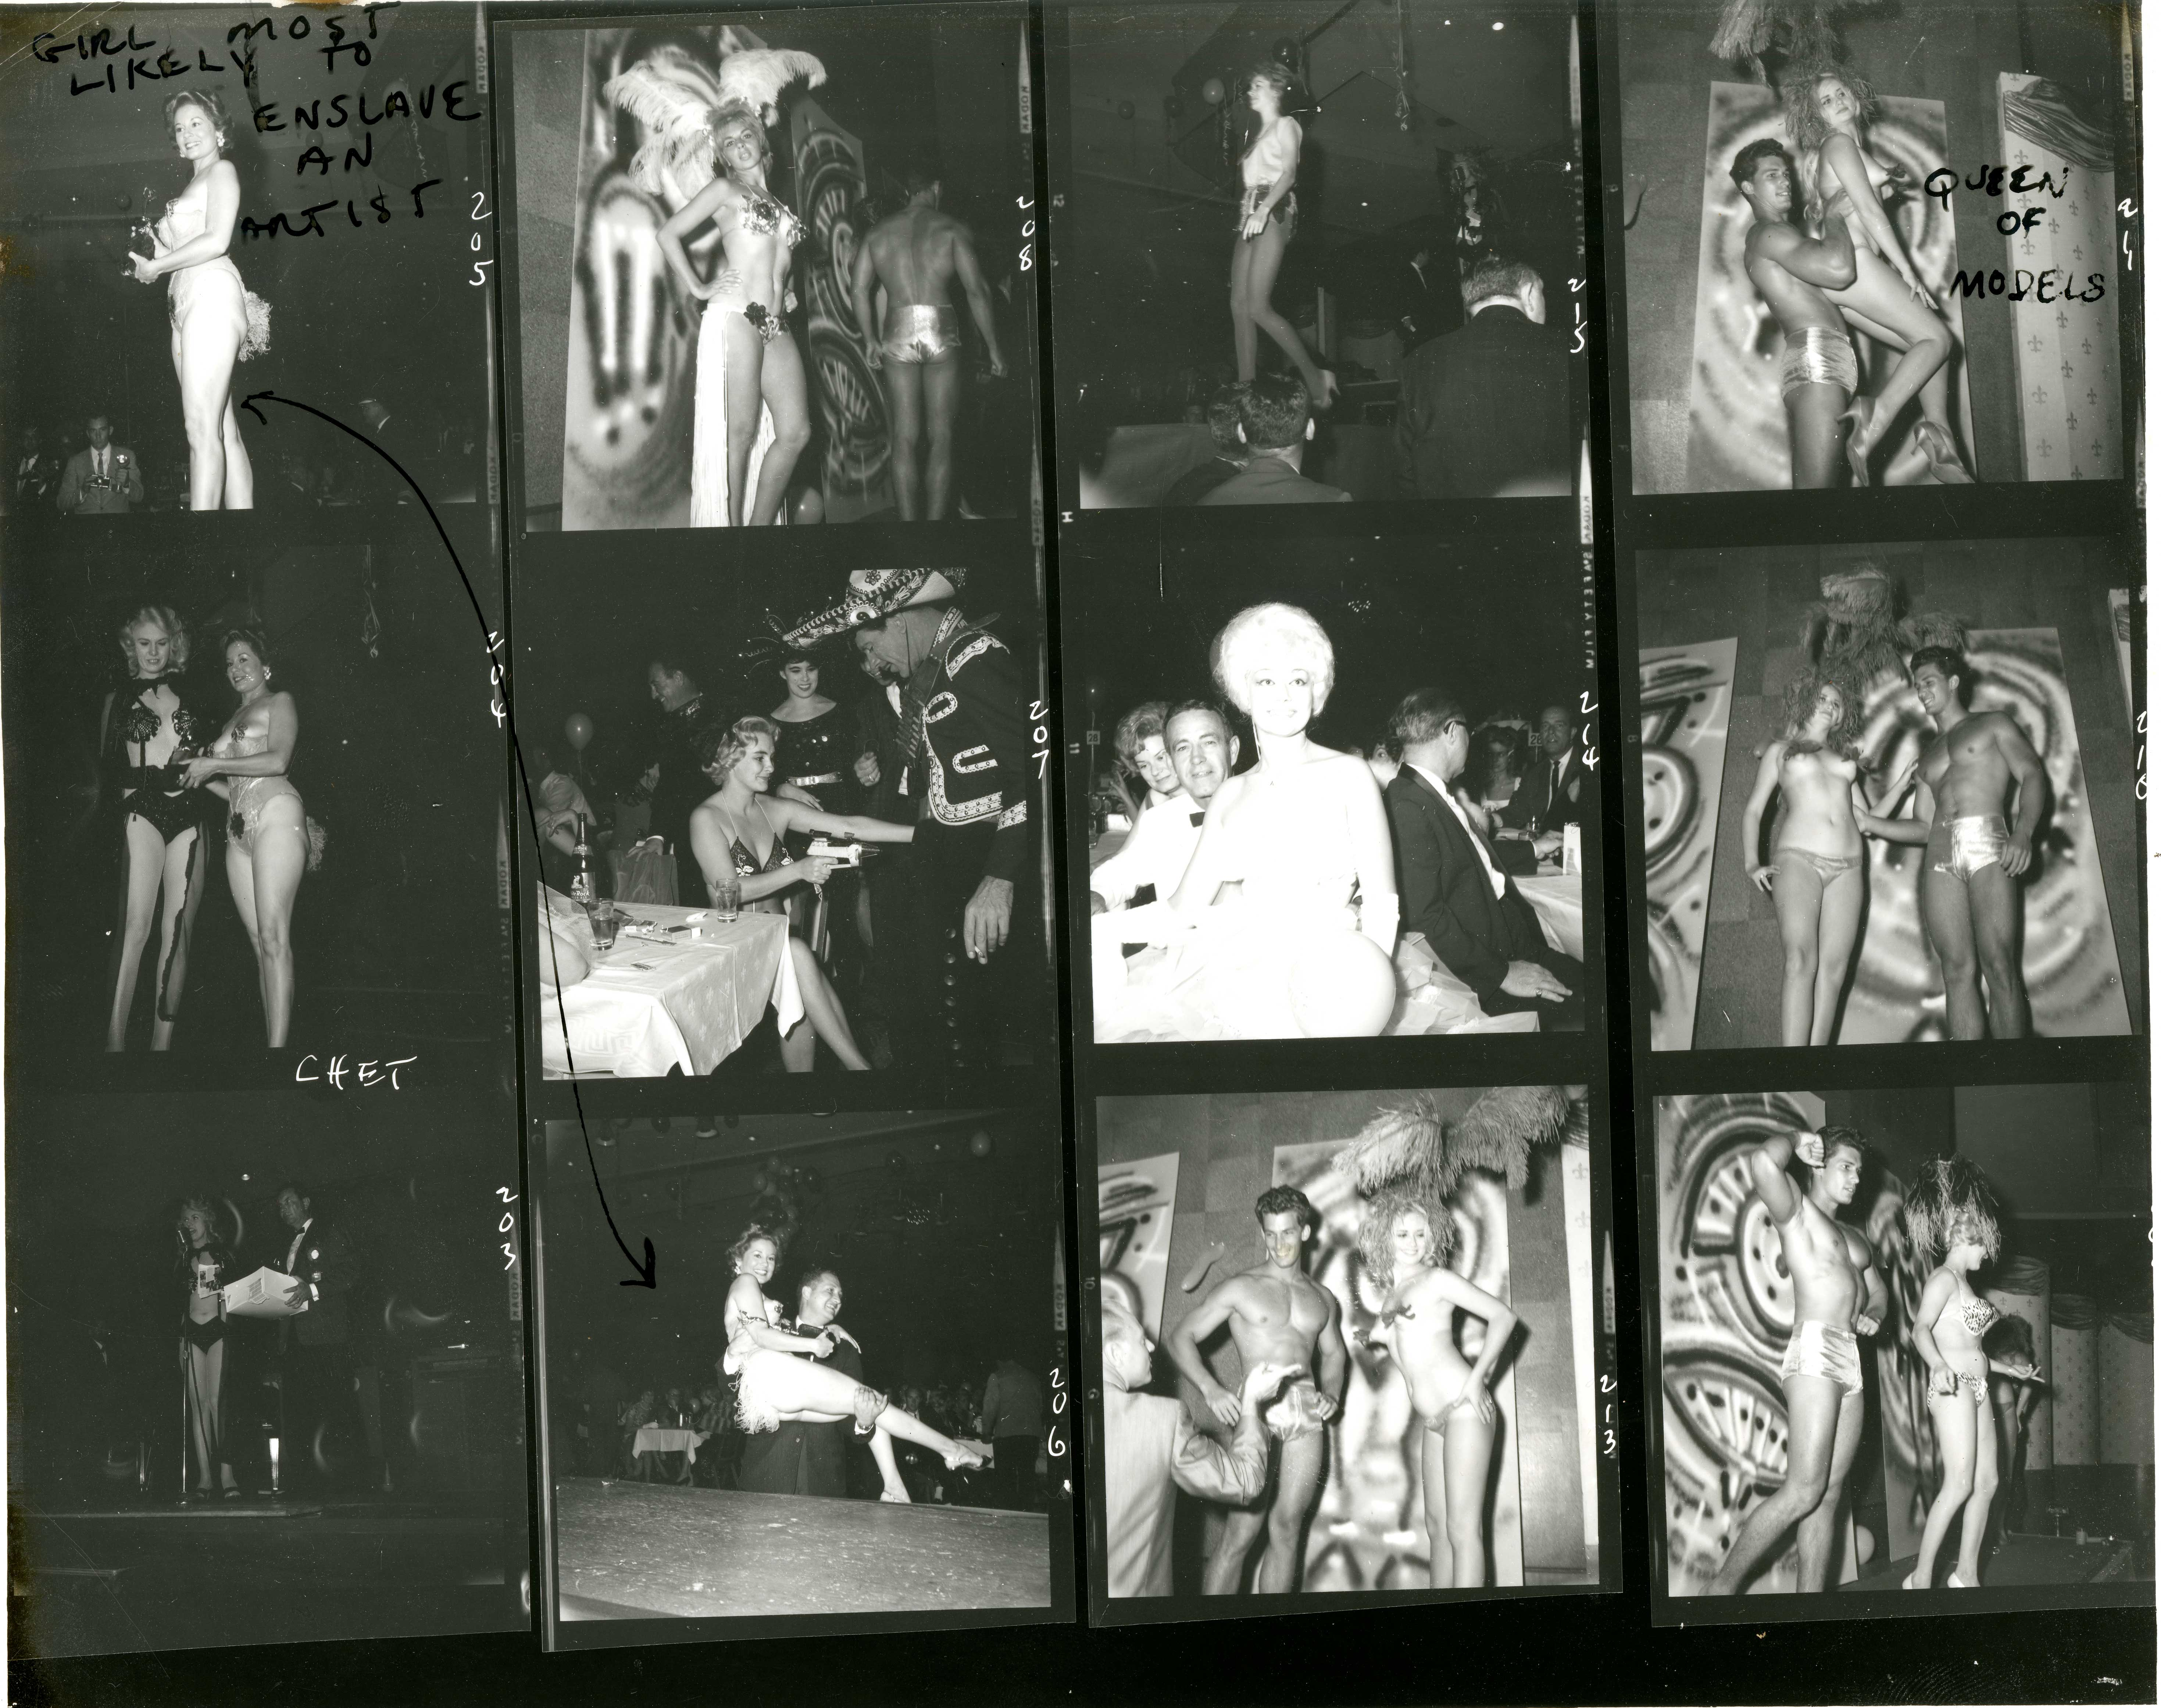 A contact sheet showing Bunny's photographs from the Artists and Models Ball